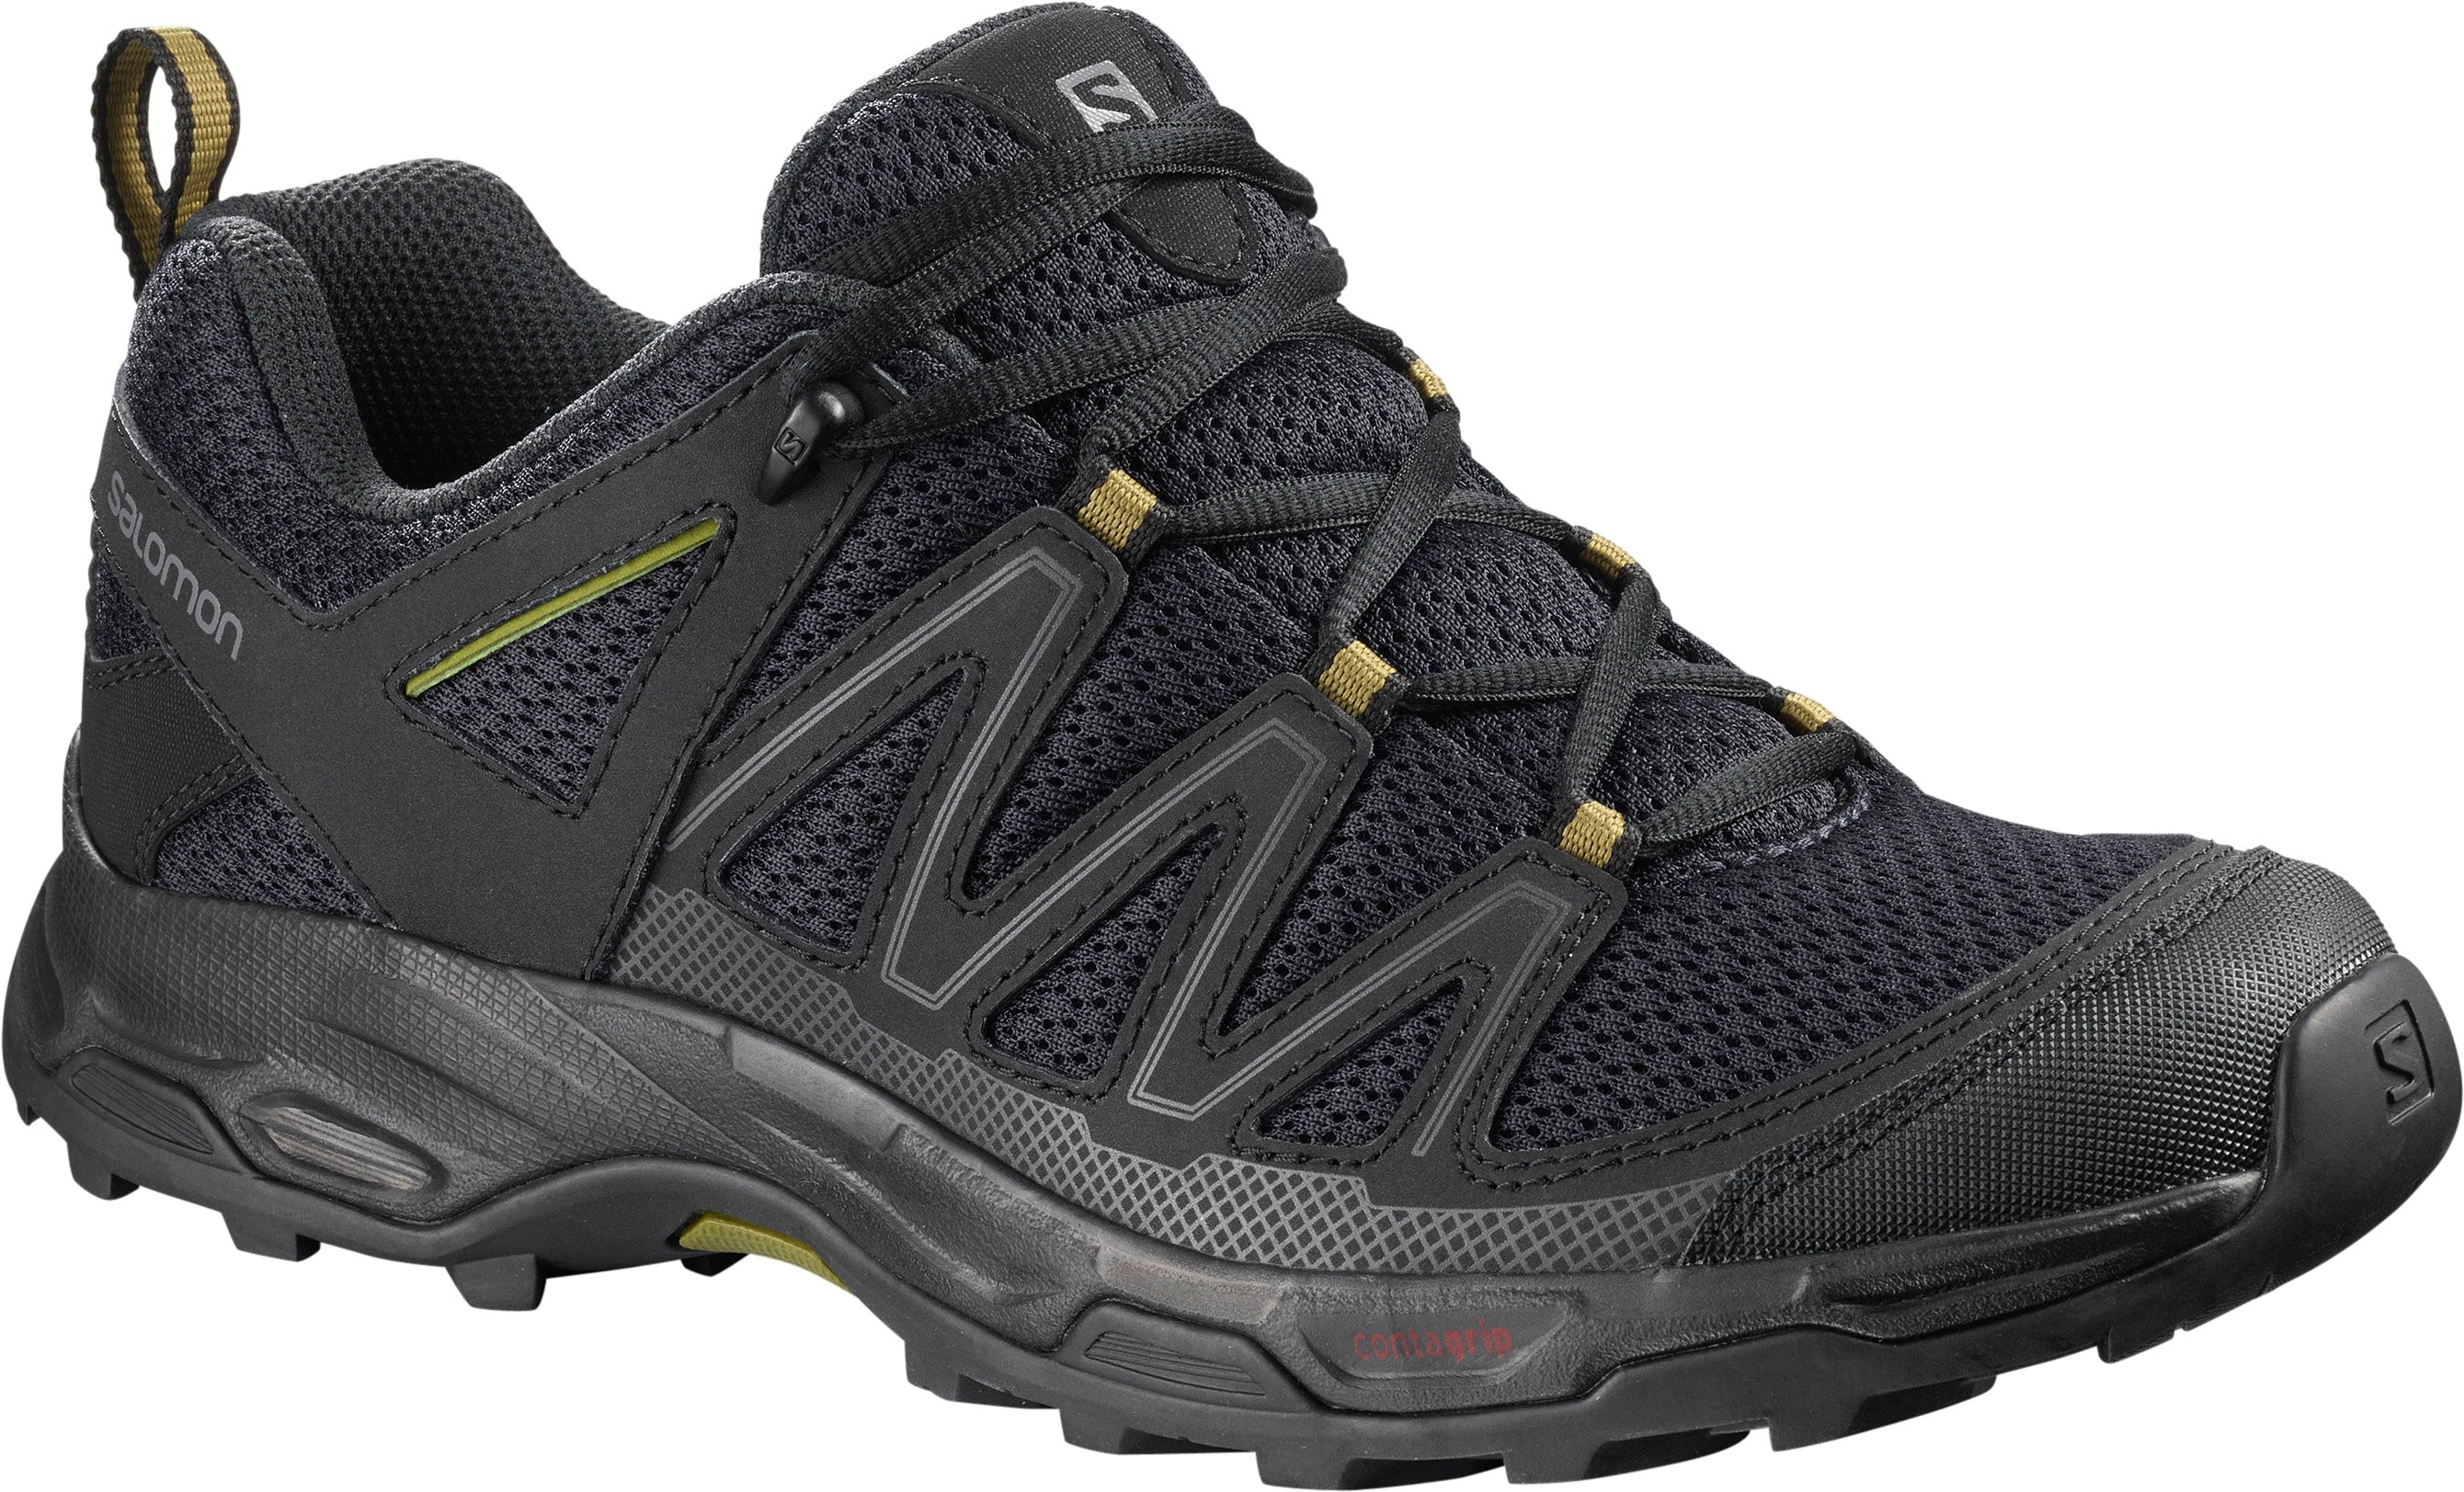 'Salomon' Men's Pathfinder WP Hiker - Night Sky / Black / Martini Olive